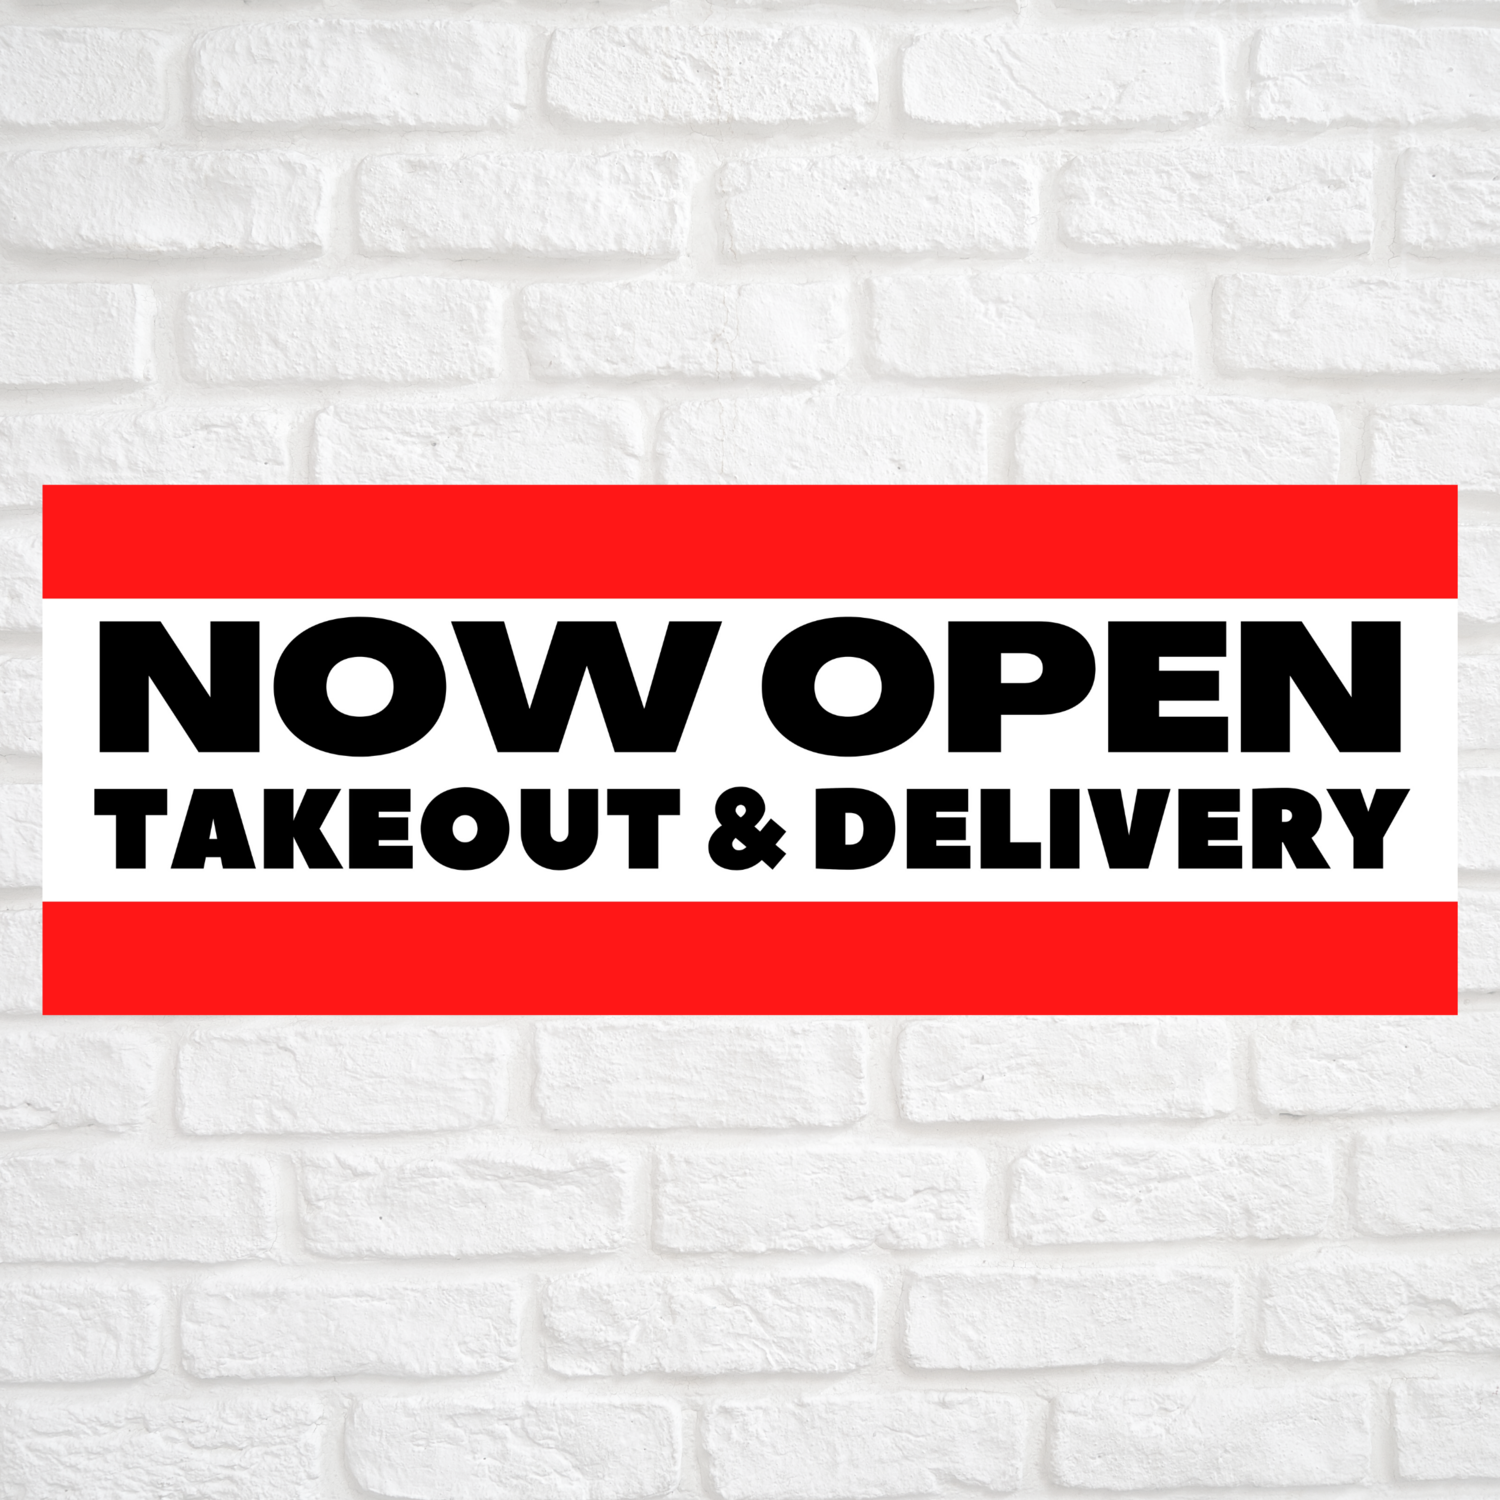 Now Open Takeout & Delivery Red/Red